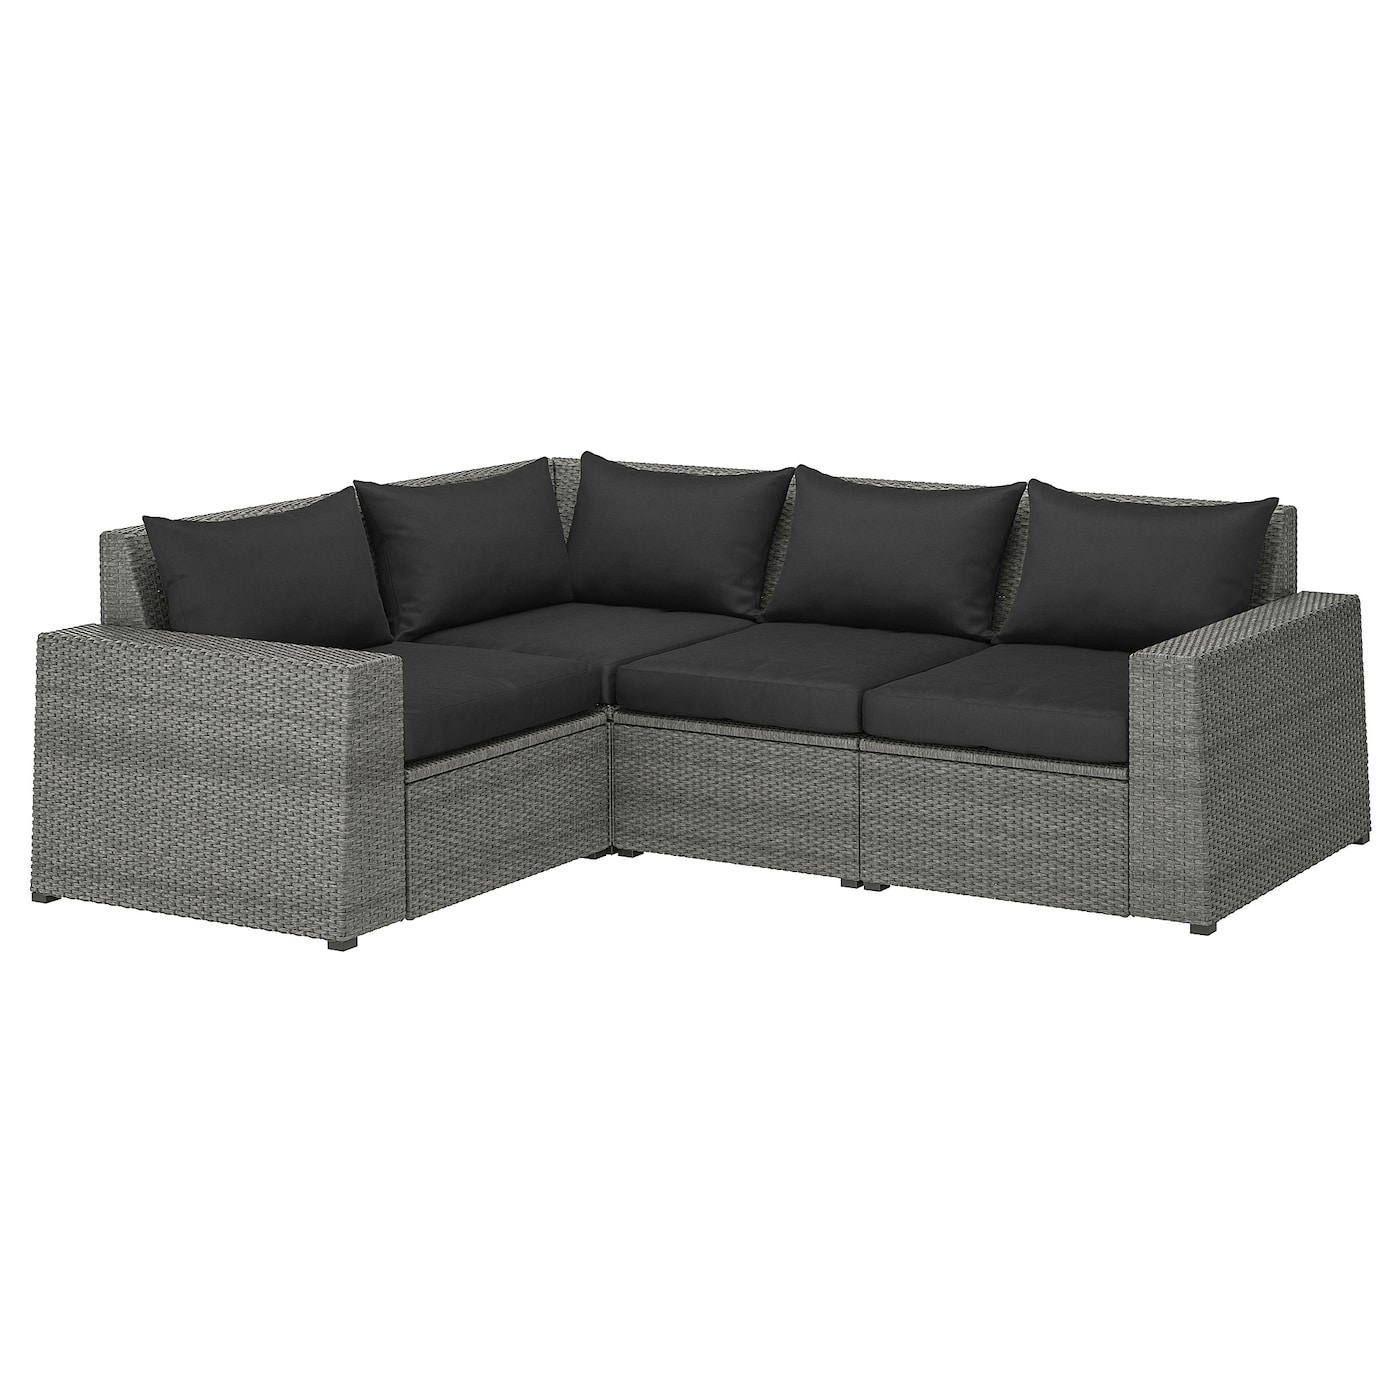 Better Homes And Gardens Replacement Cushions Azalea Ridge, Solleron Modular Corner Sofa 3 Seat Outdoor Dark Gray Hallo Black Ikea